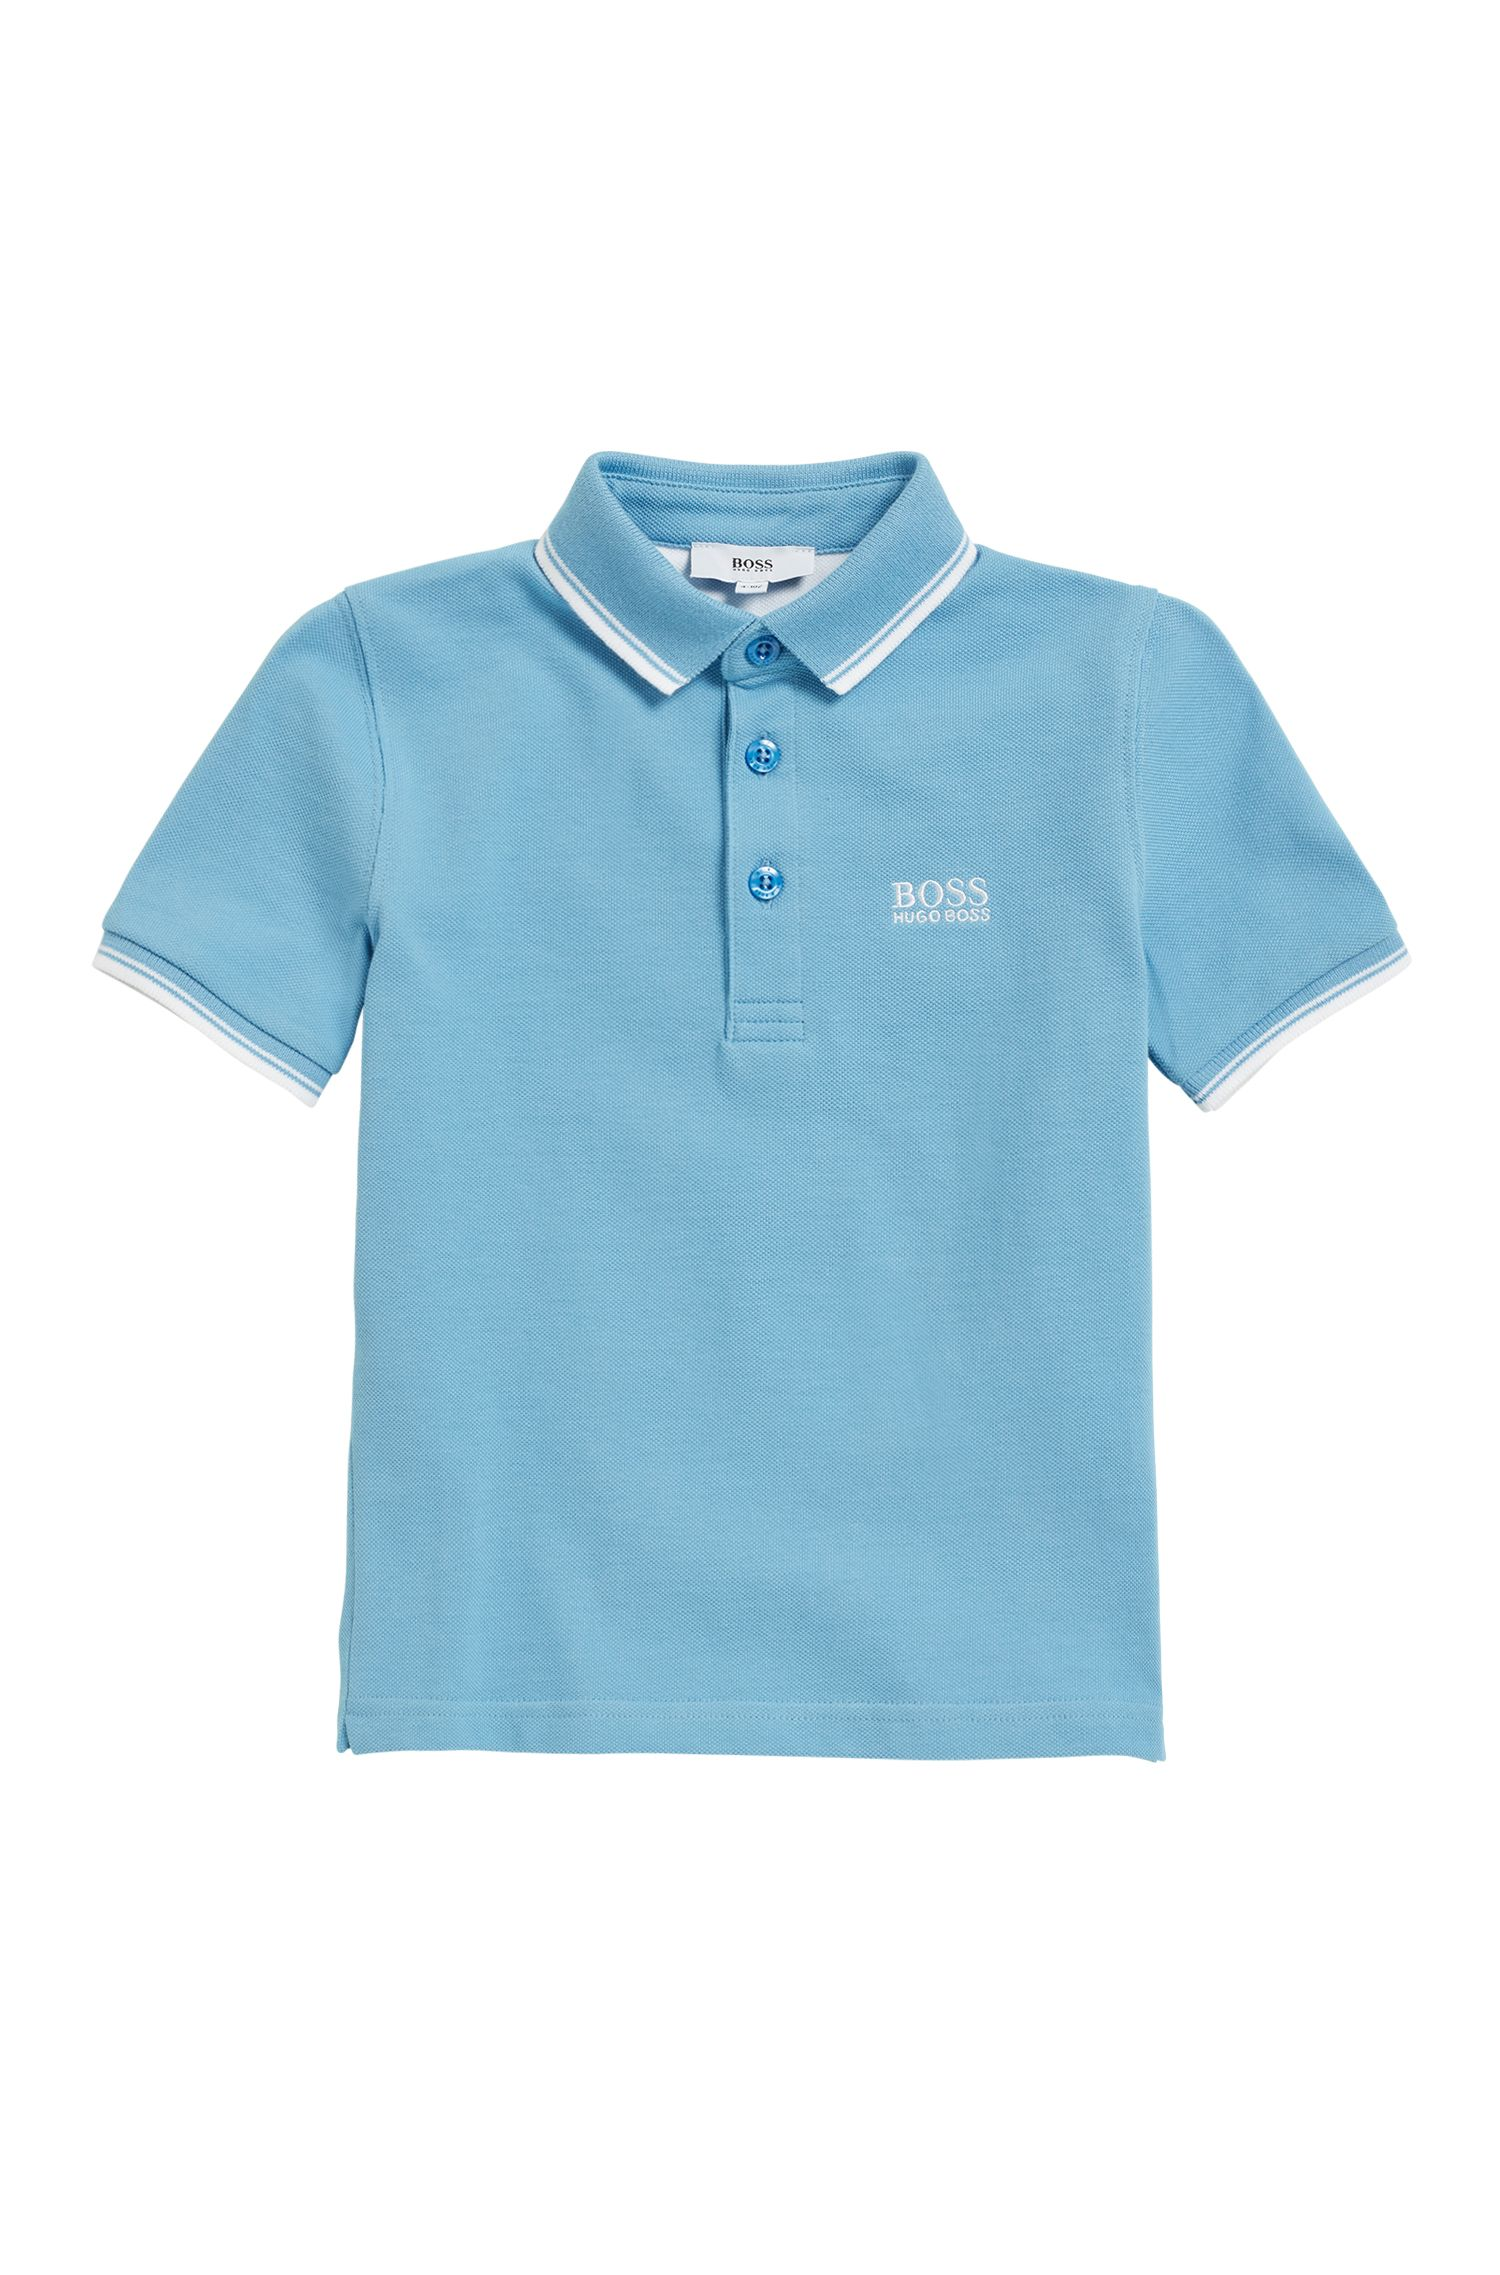 Kids' cotton polo shirt with undercollar print